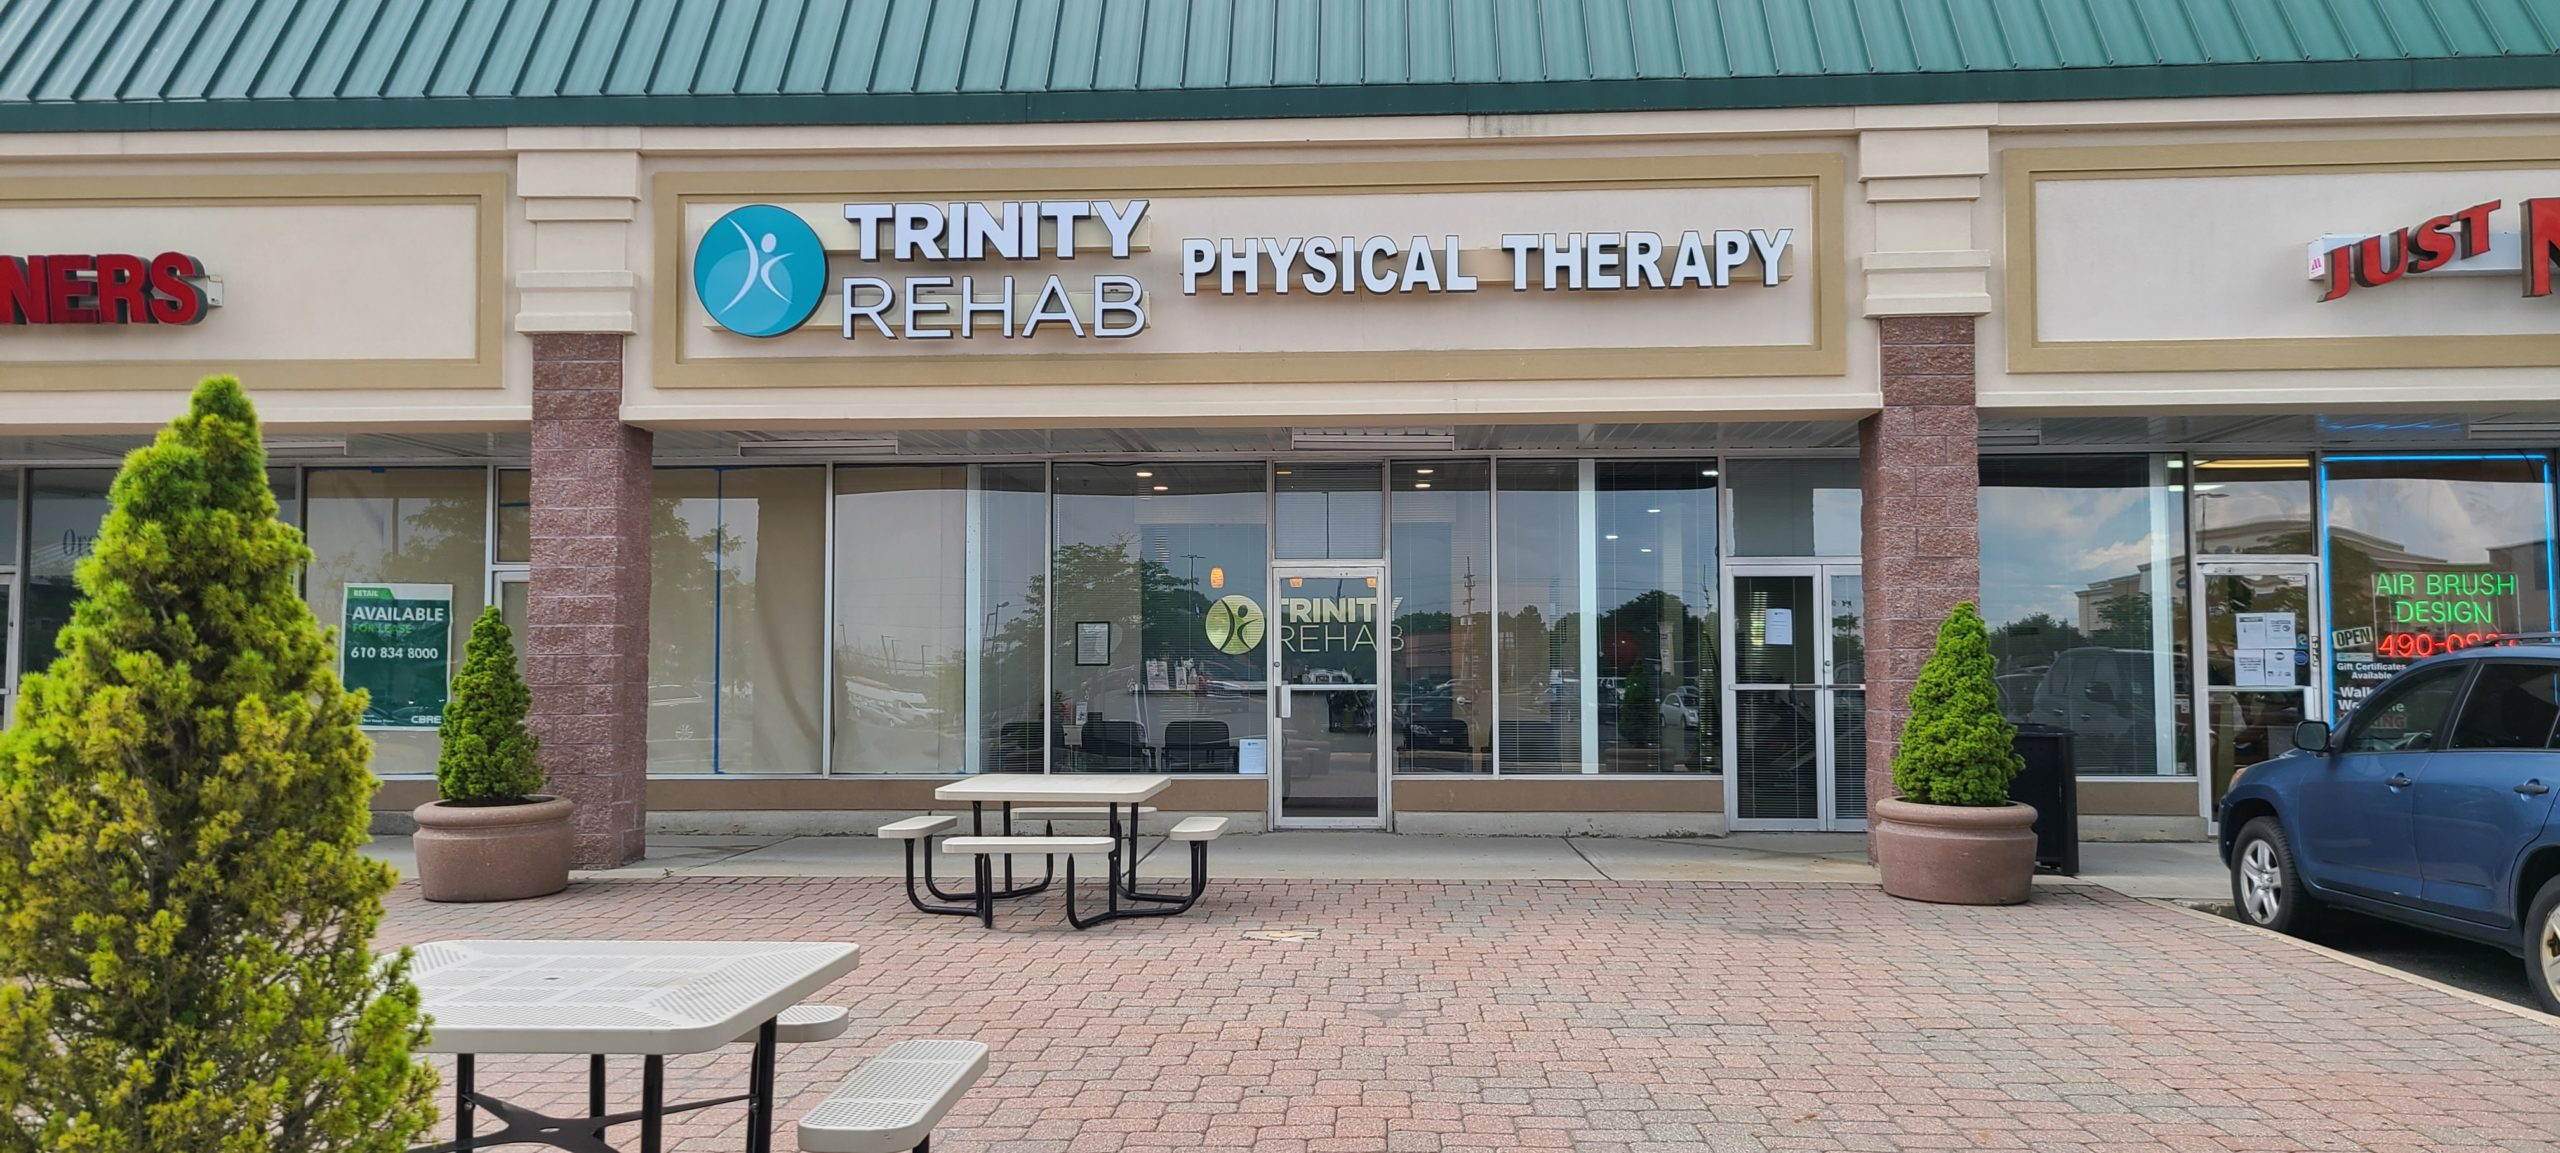 Trinity Rehab Opens New State-of-the-Art Physical Therapy Facility in East Windsor, New Jersey